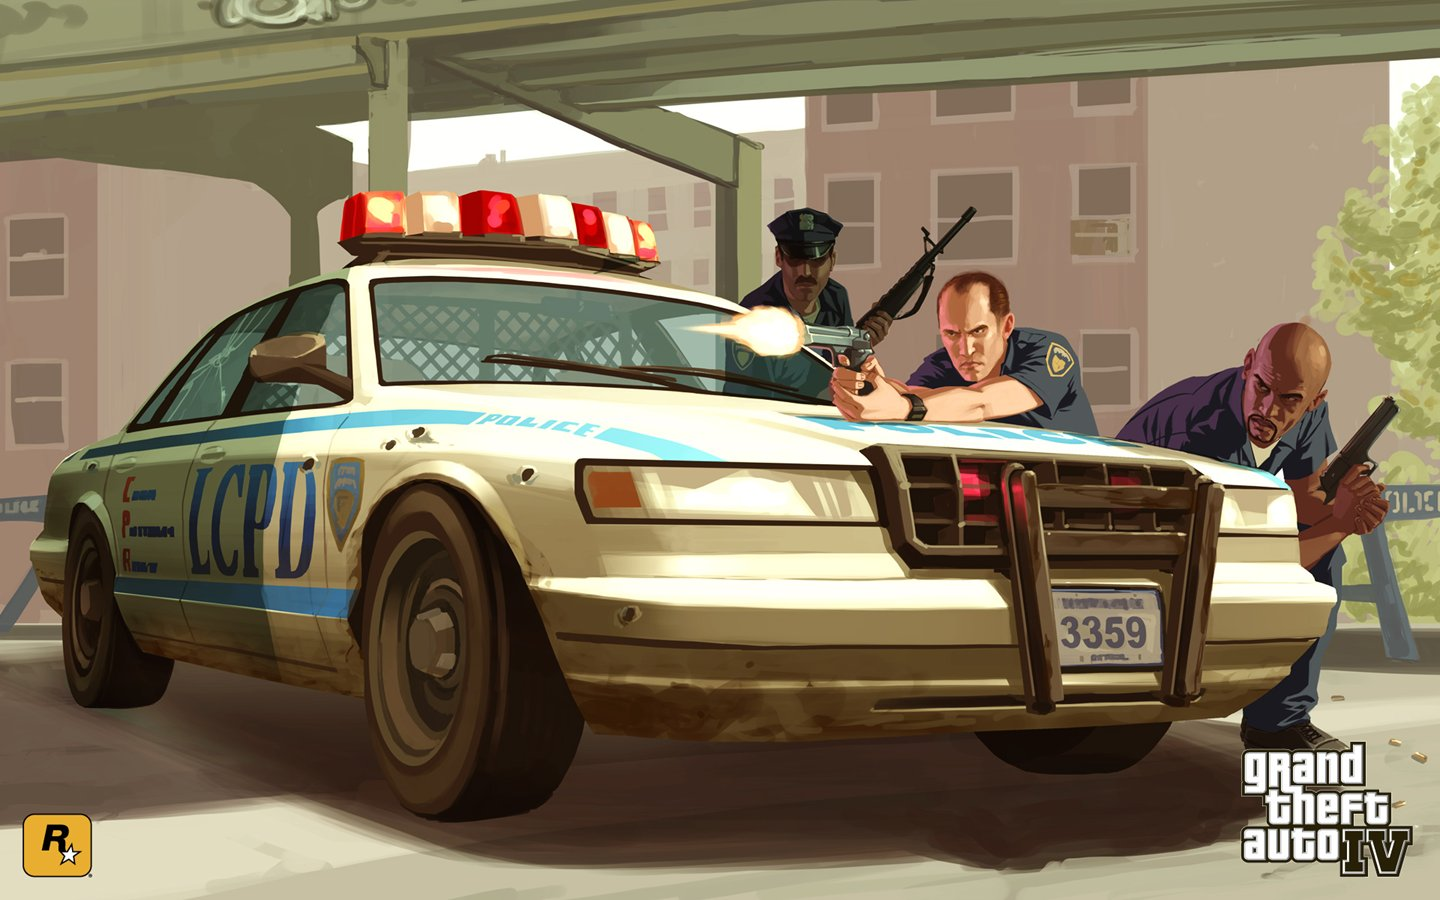 Grand Theft Auto IV GTA Wallpaper 18386